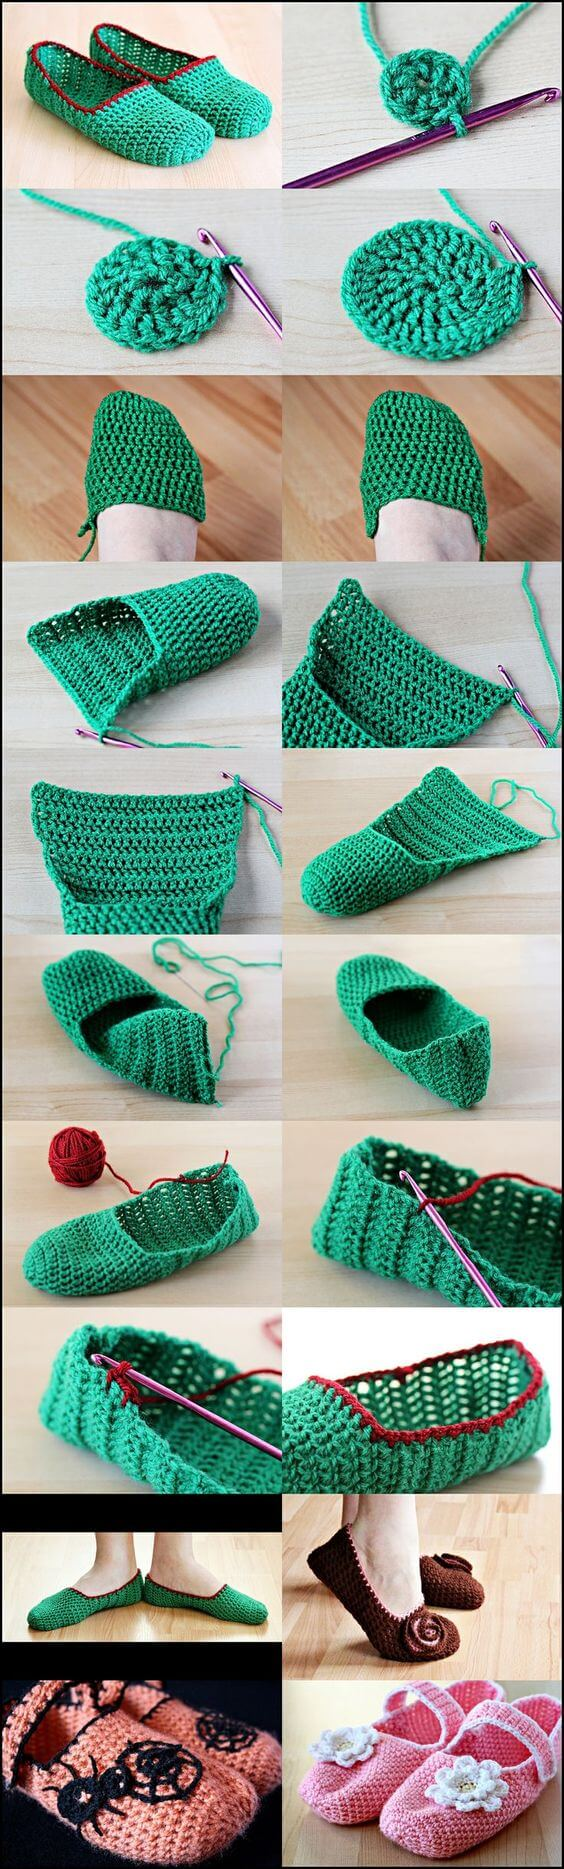 Top Trend Crocheted Booties Models and Making